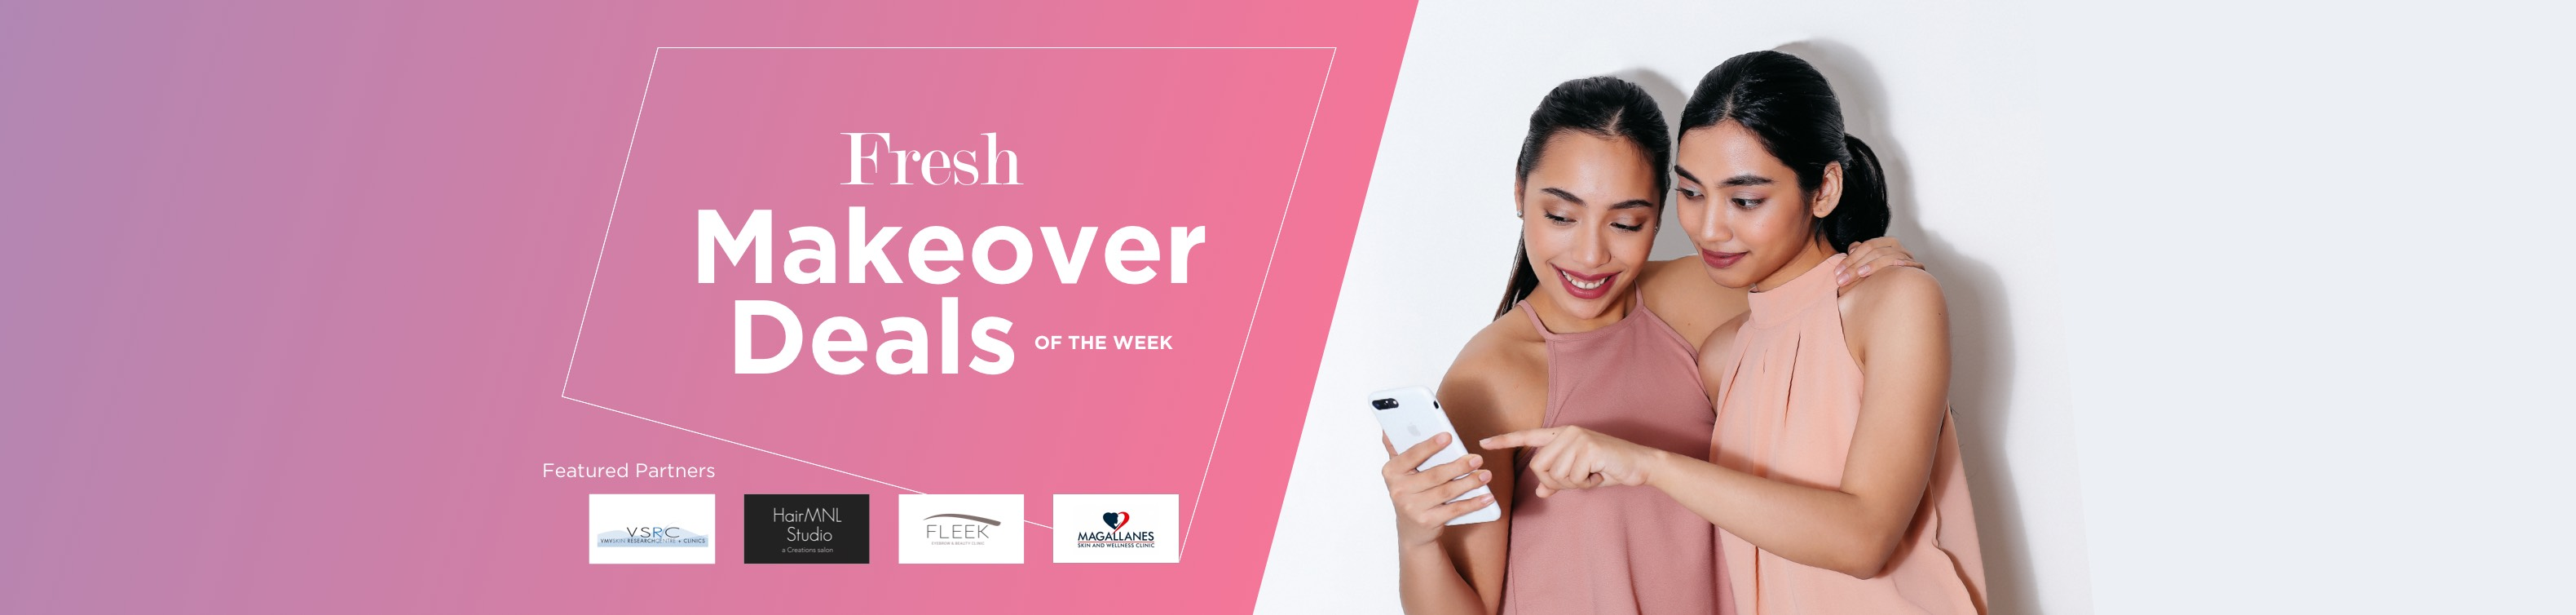 70 Deals + More Every Week: BeautyMNL